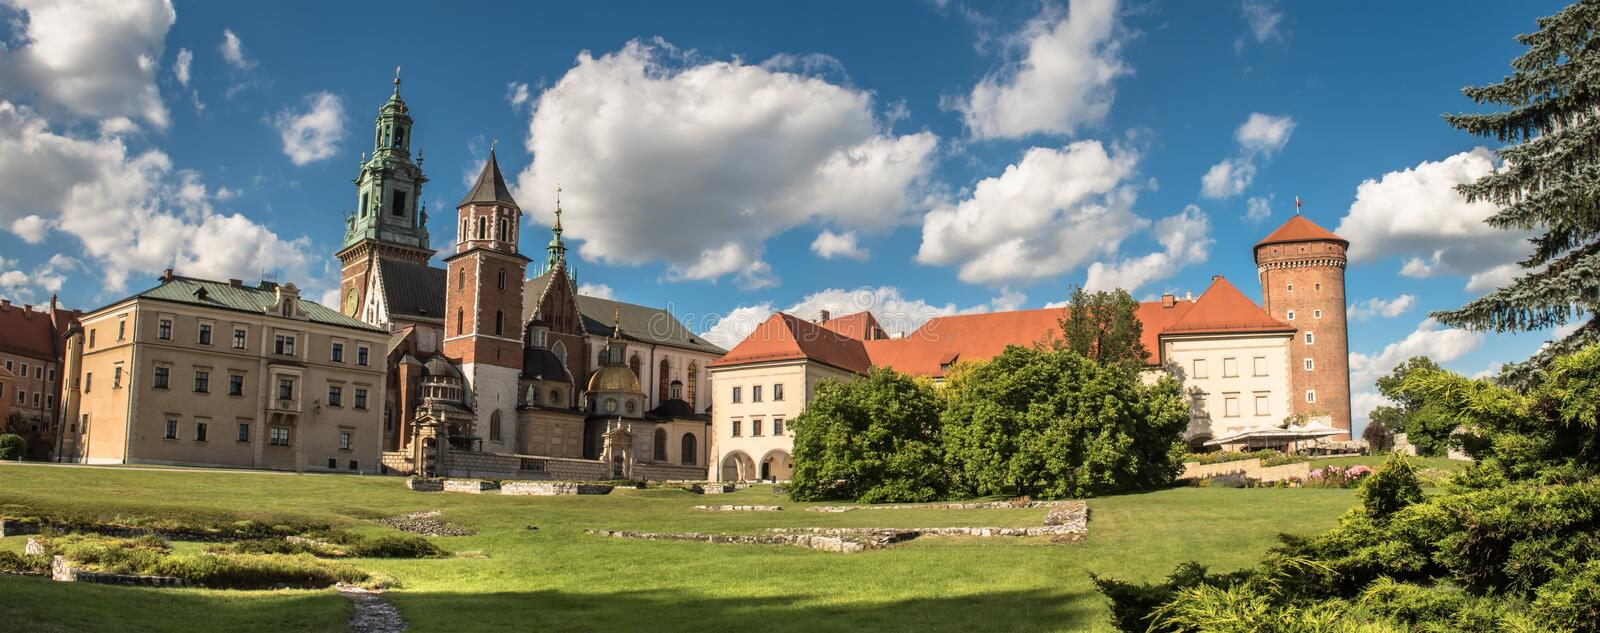 Panorama de cathédrale de Wawel à Cracovie, Pologne photo libre de droits